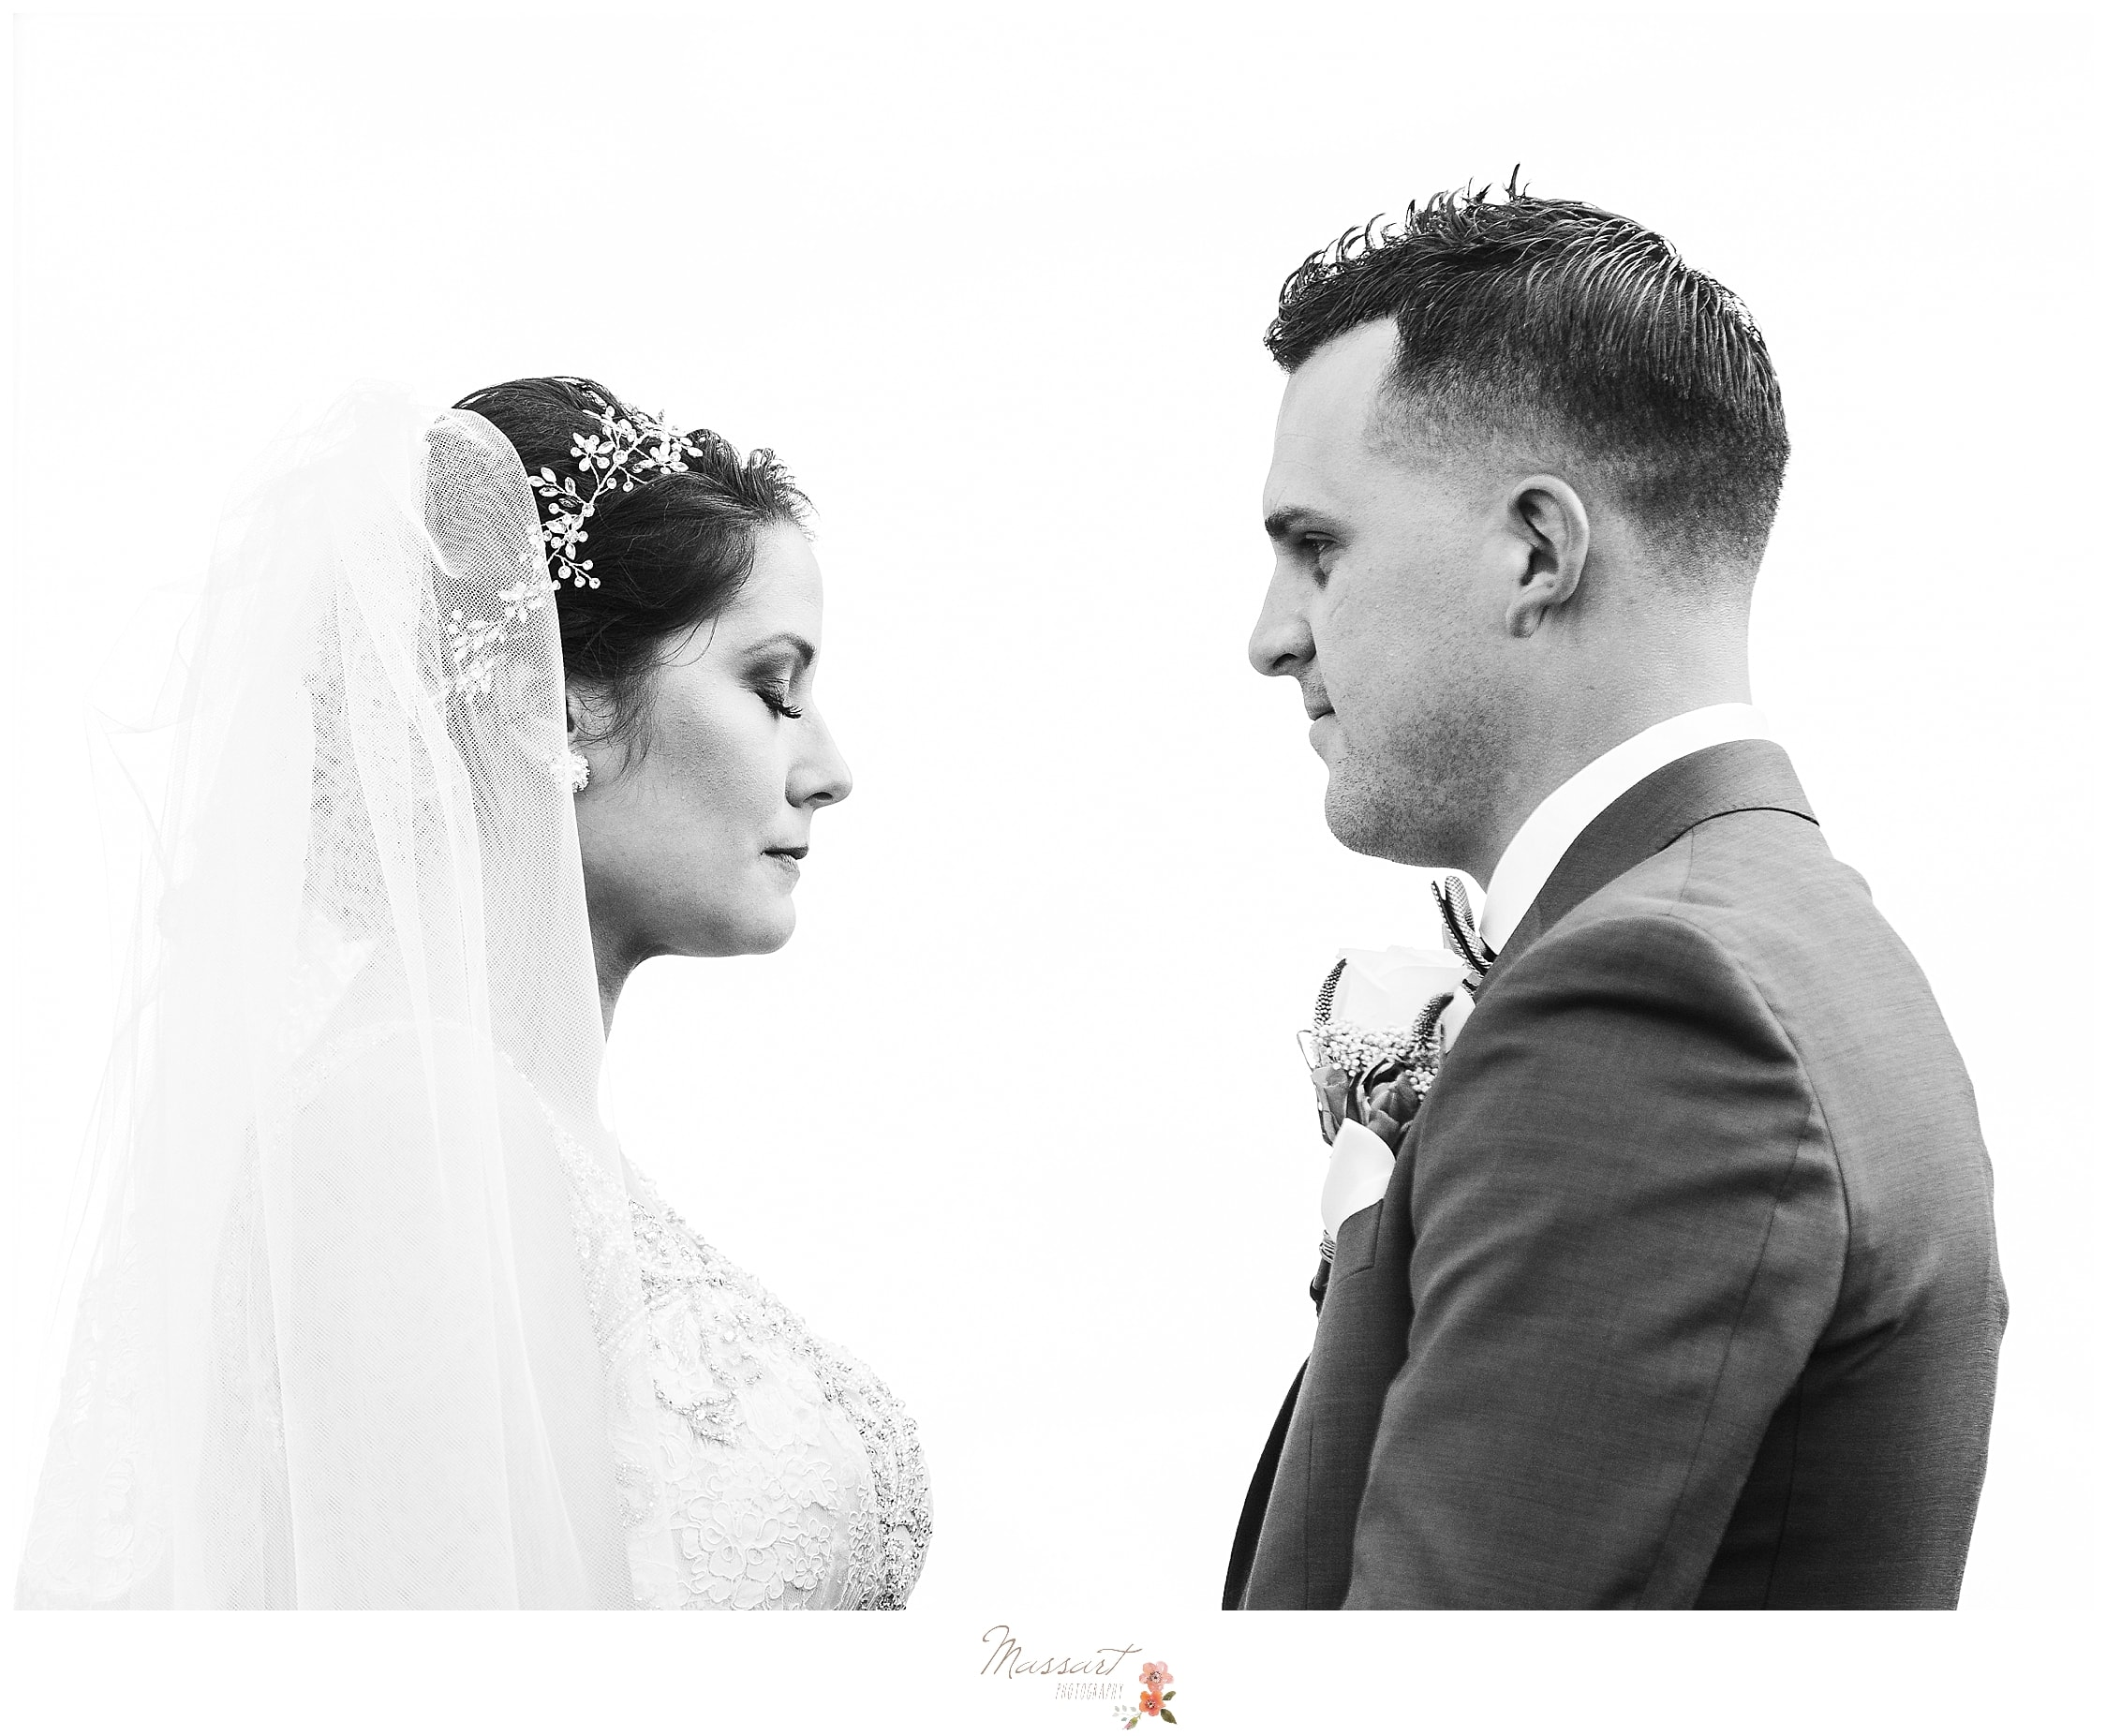 Emotional moment between bride and groom at Rhode Island venue Harbor Lights photographed by wedding photographers Massart Photography.